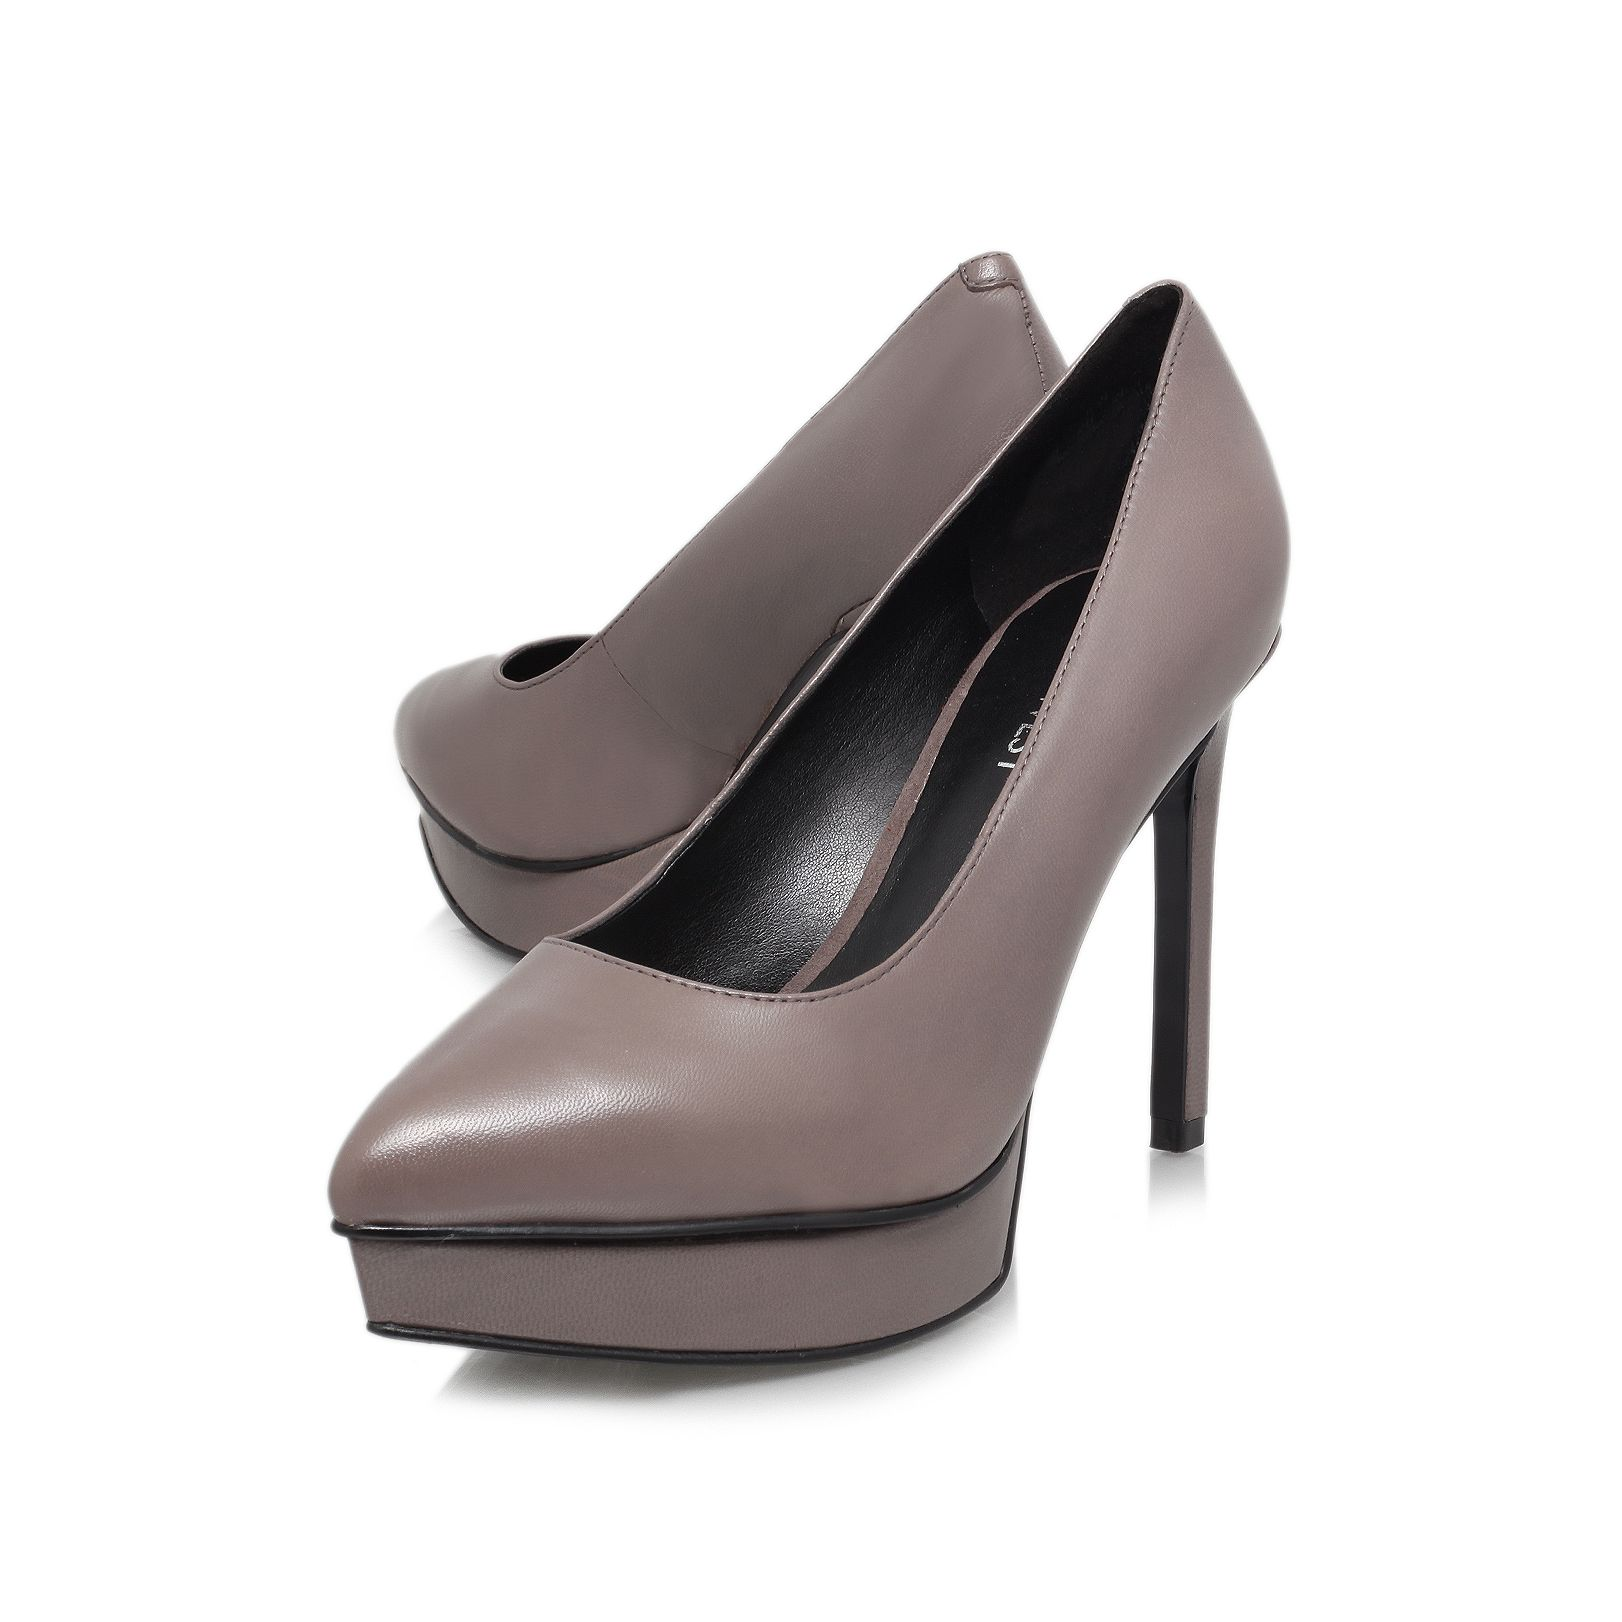 Bigbucks high heel court shoes